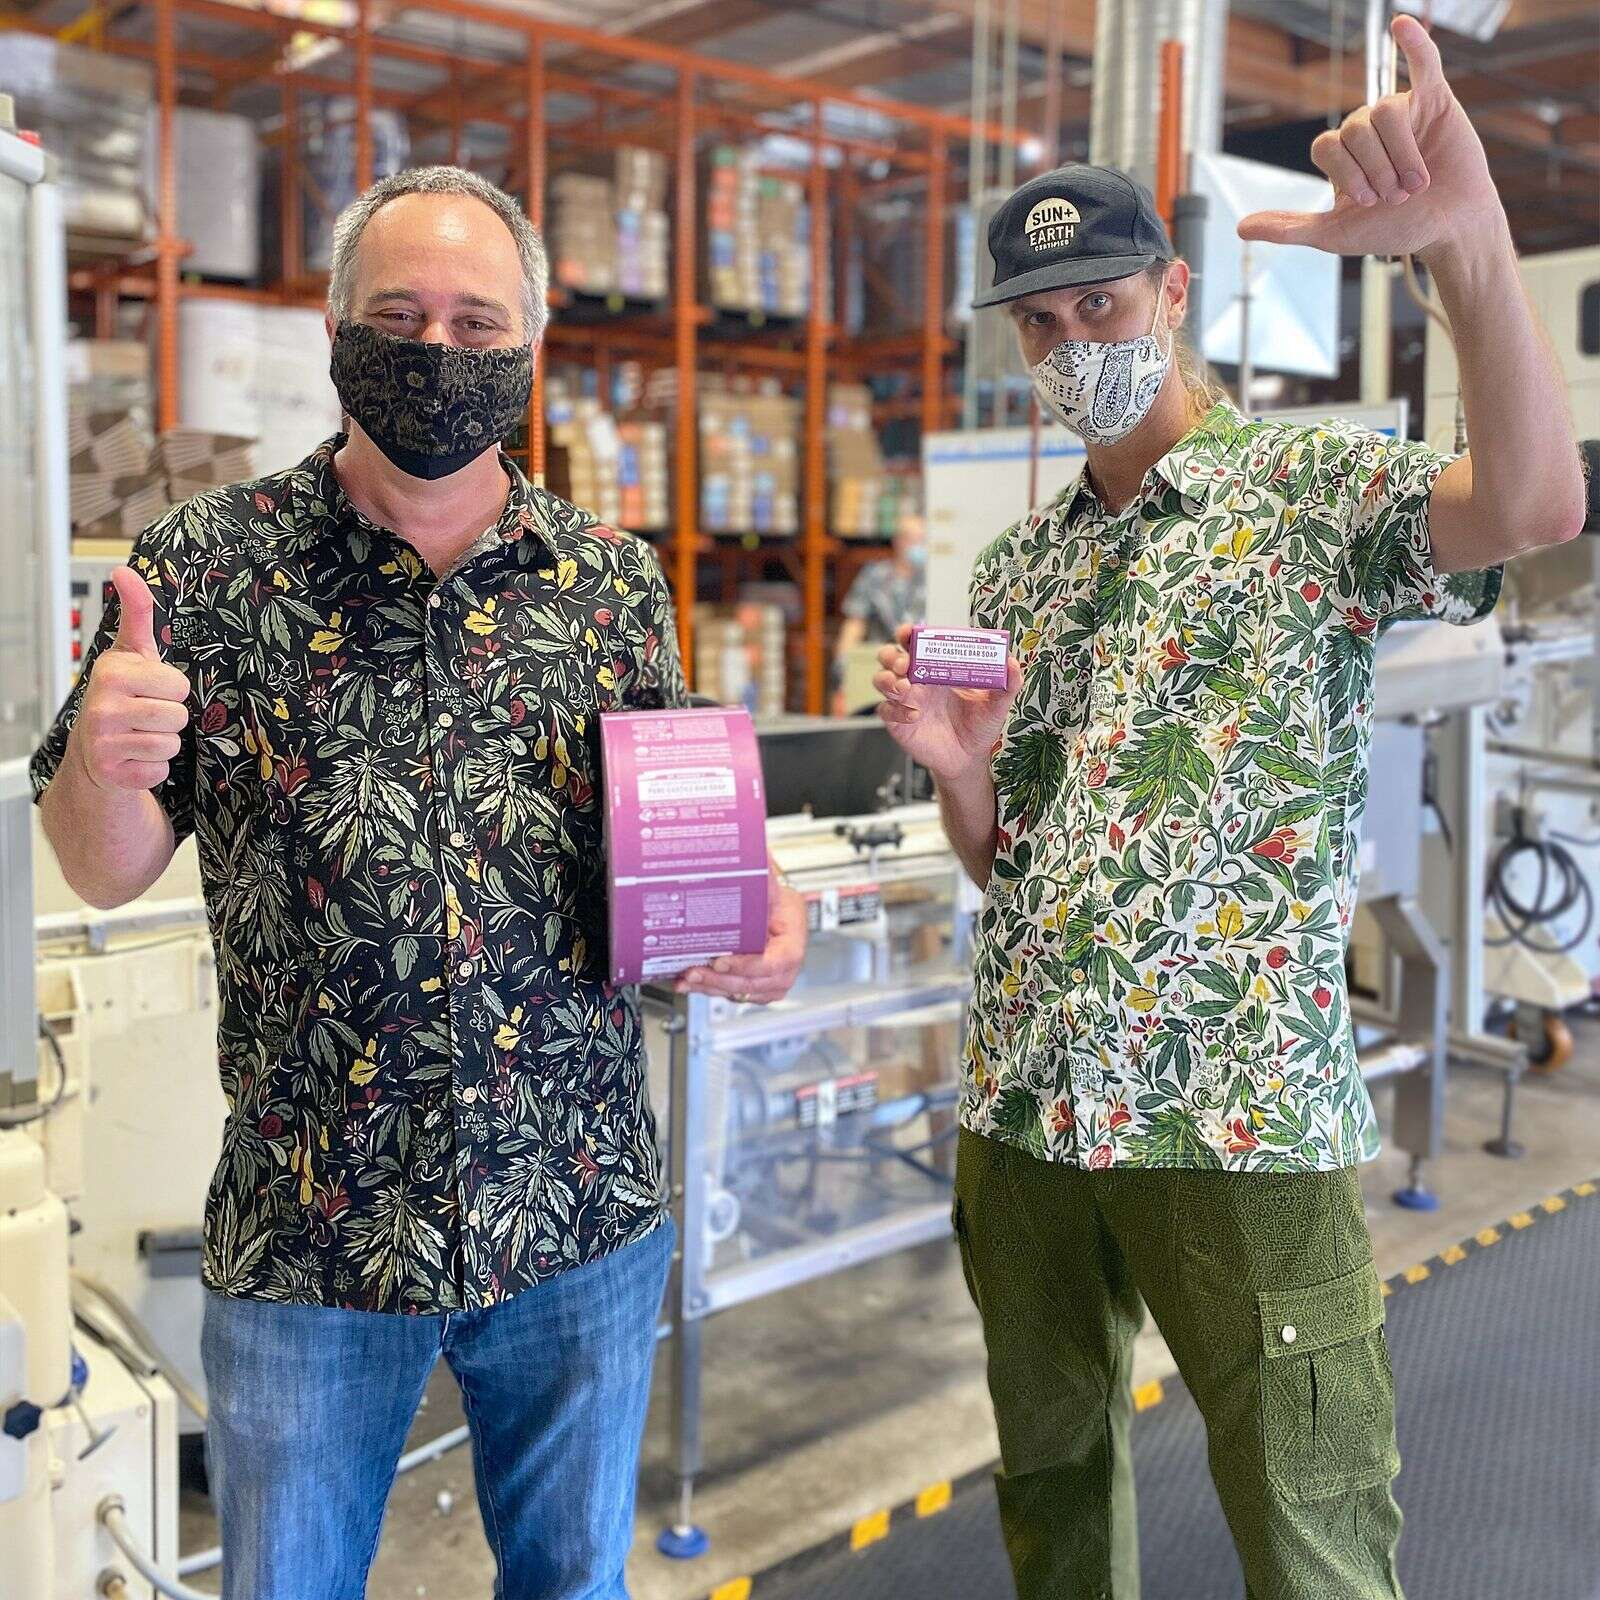 Dr. Bronner's president Michael Bronner, left, and CEO (cosmic engagement officer) David Bronner with the first batch of Sun+Earth Cannabis Scented Pure-Castile Bar Soap. | Courtesy Dr. Bronner's